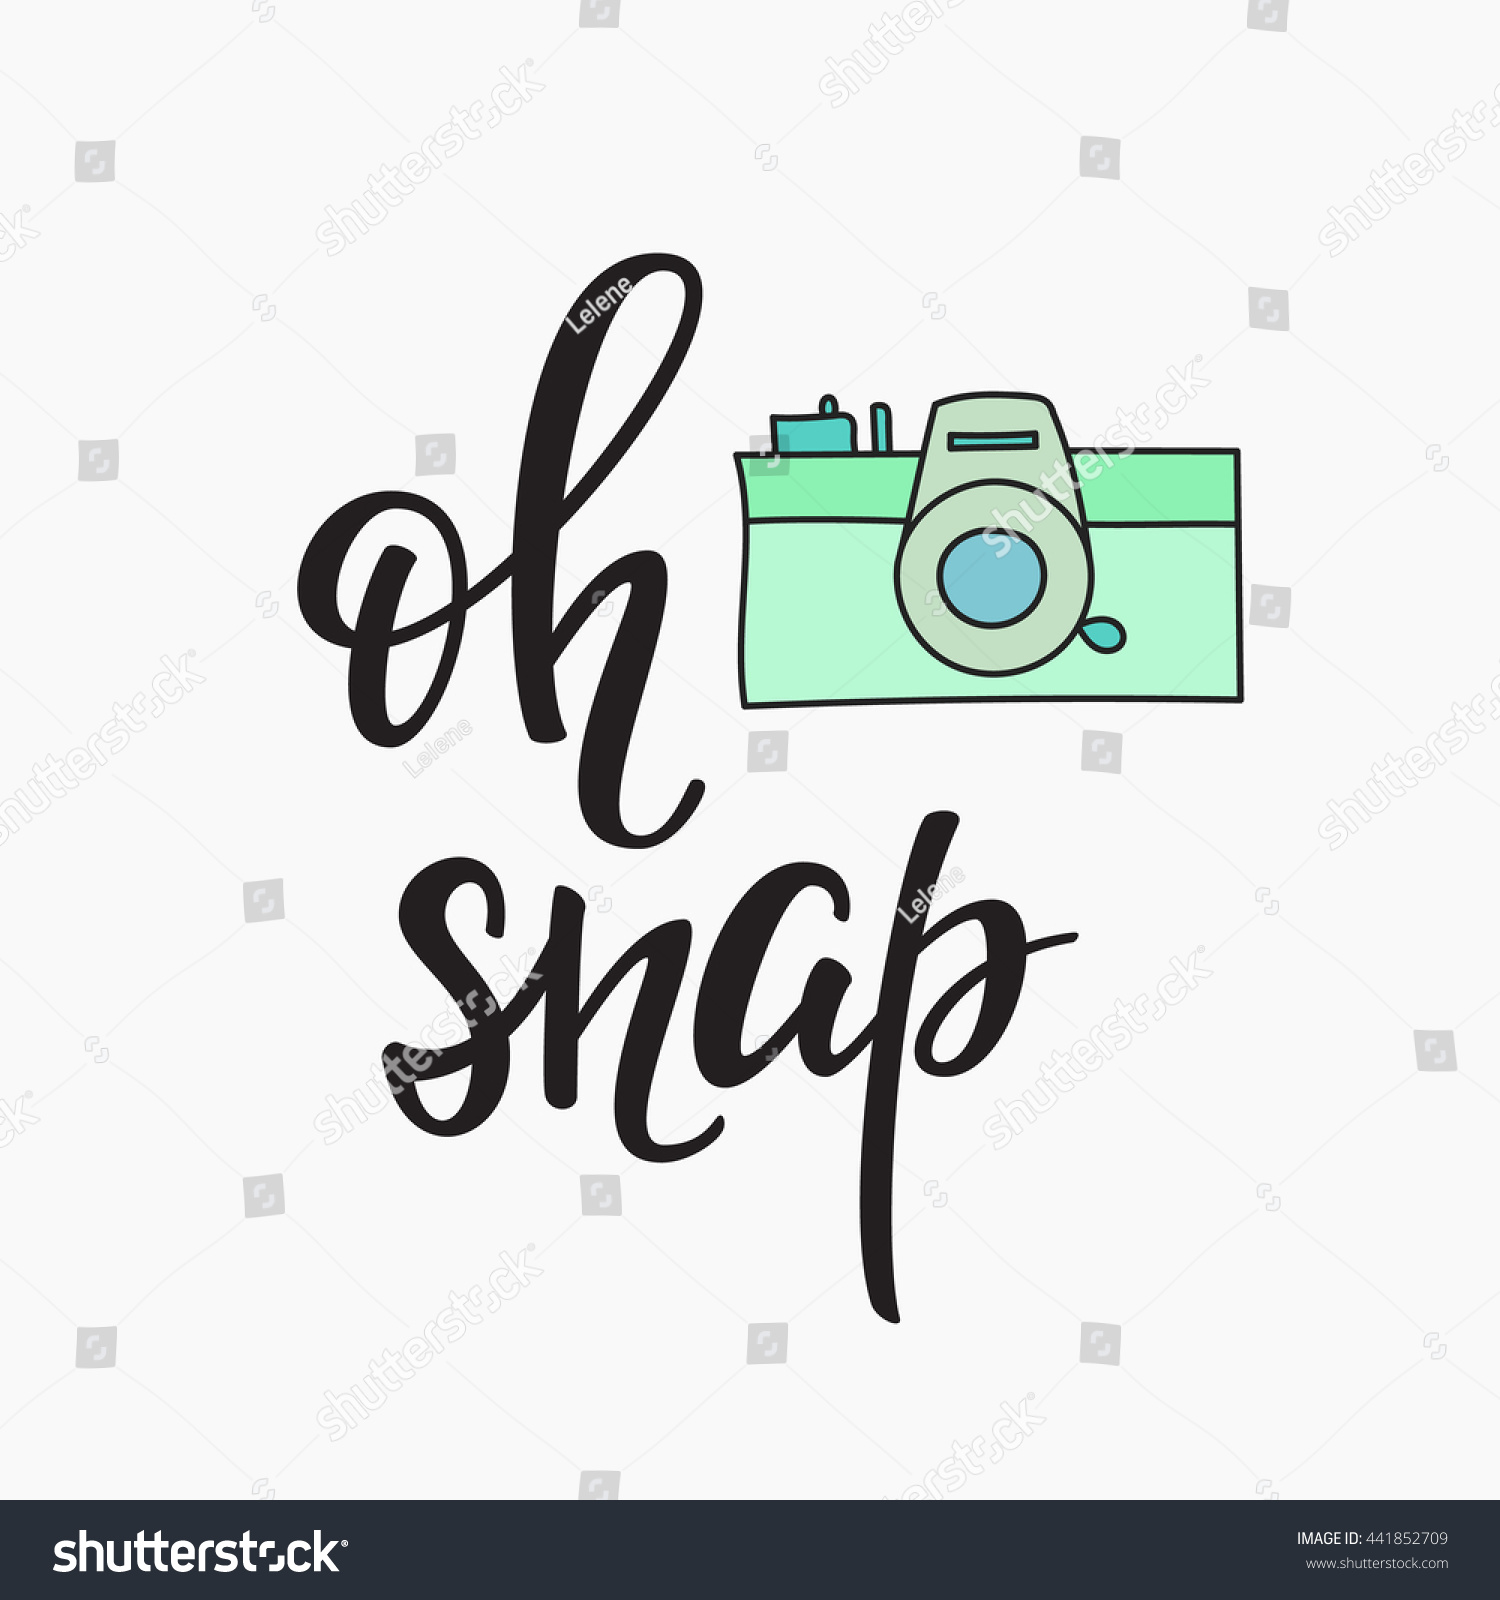 Oh Snap Photo Booth Vintage Old Stock Vector 441852709 - Shutterstock